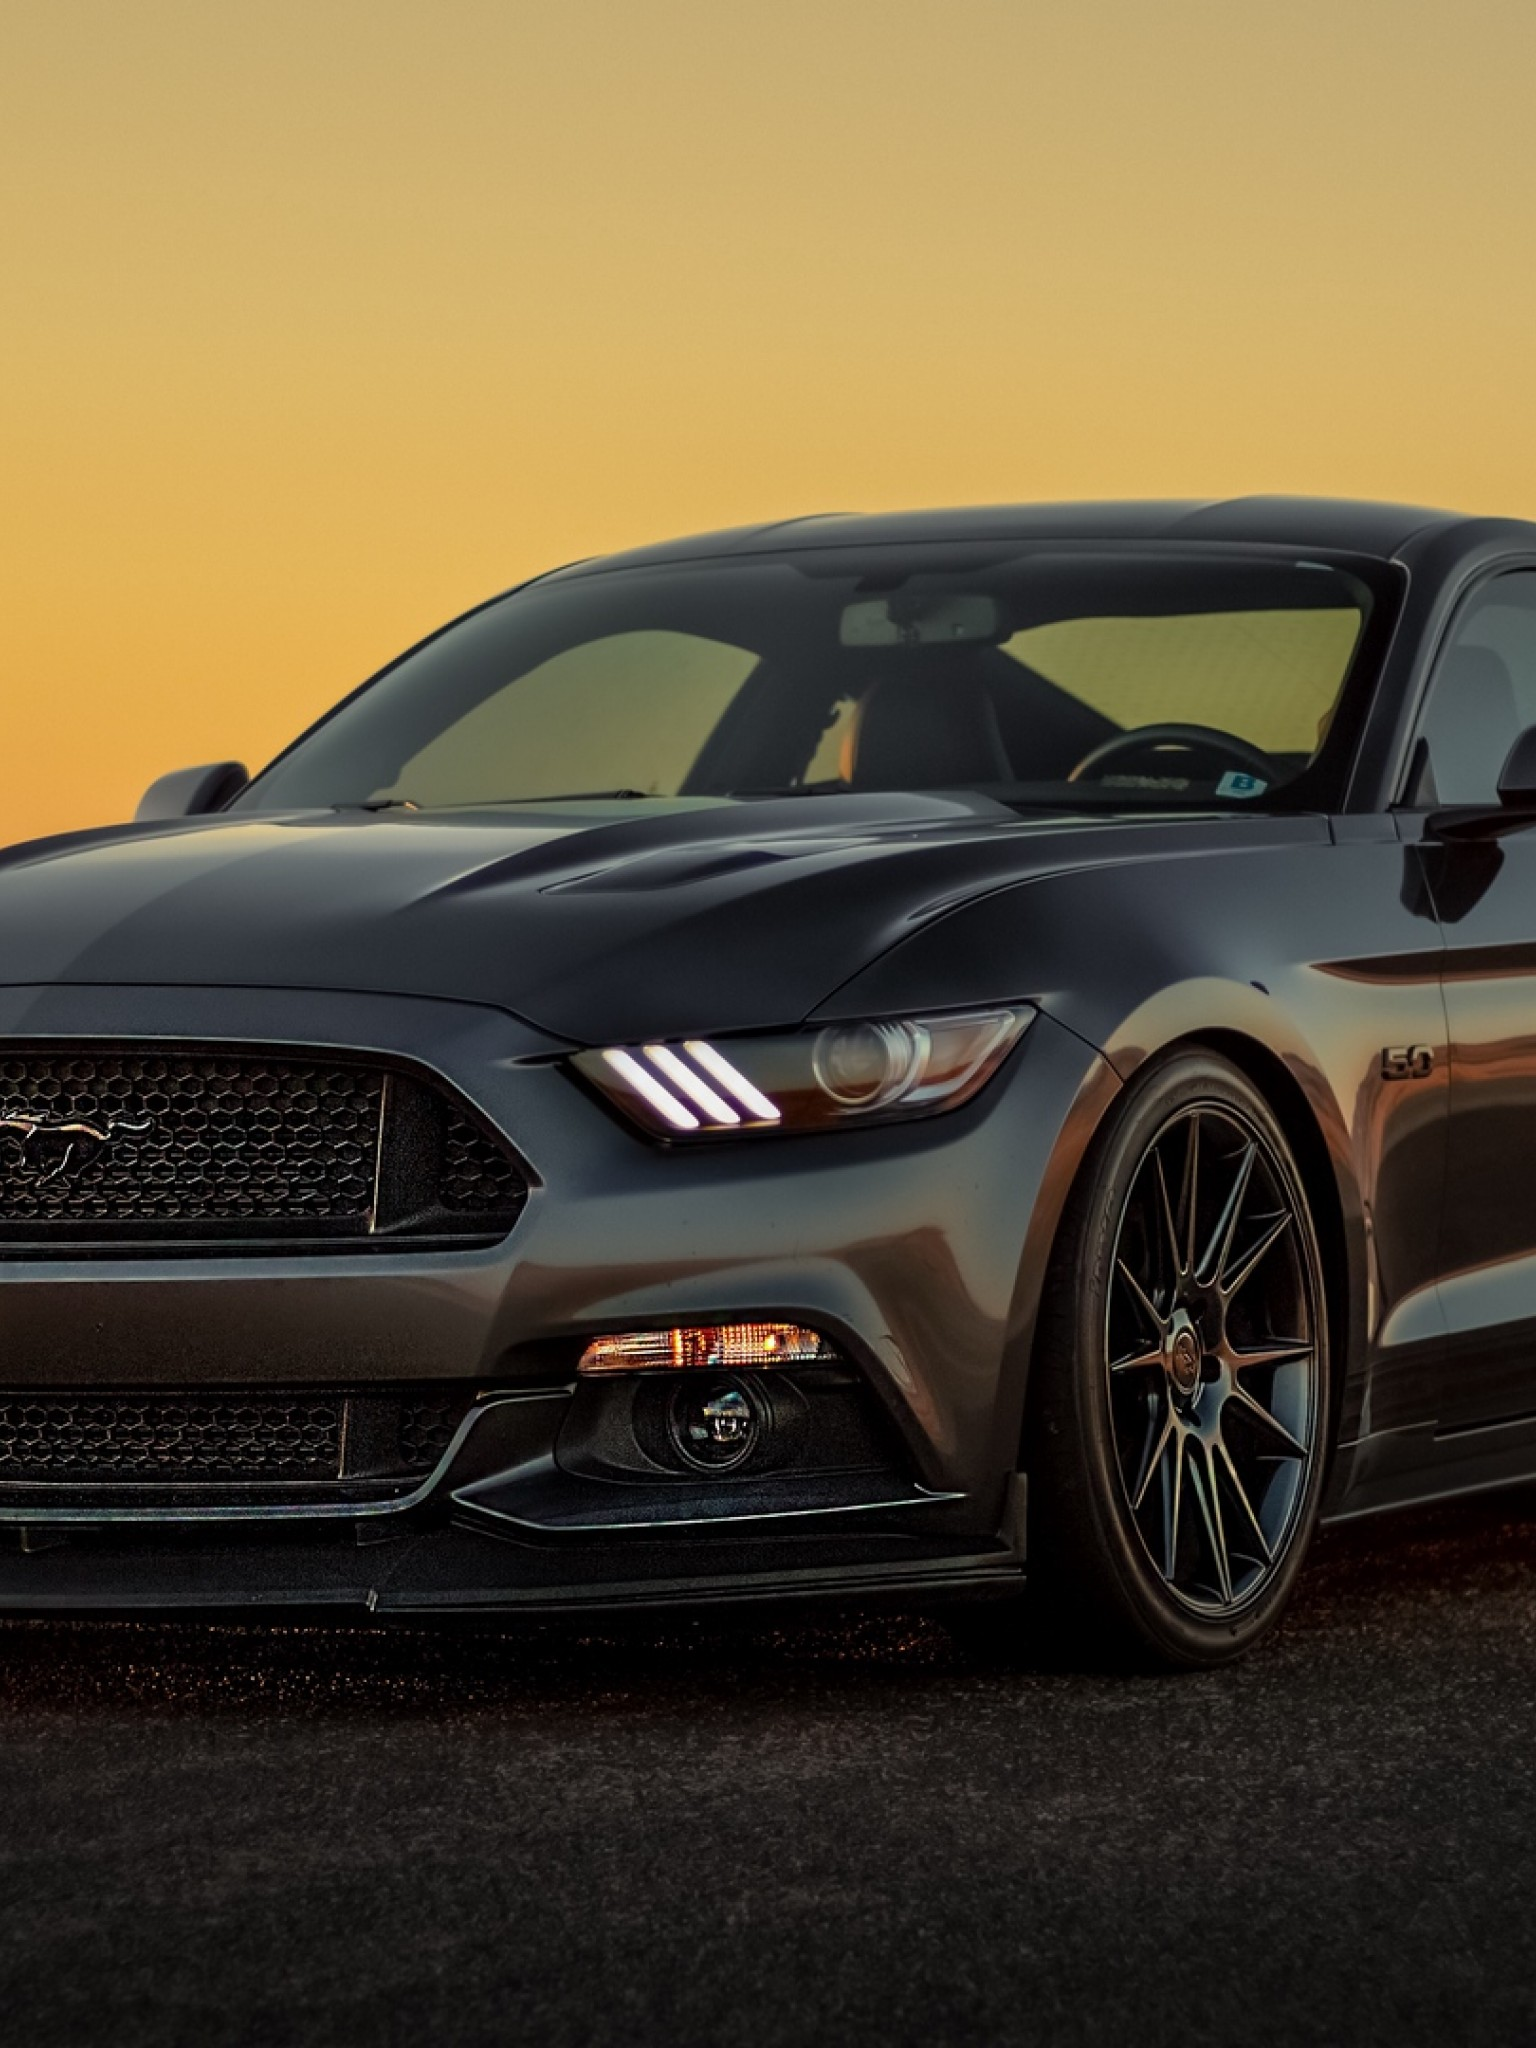 Gray Ford Mustang Hd Wallpaper Available In Different